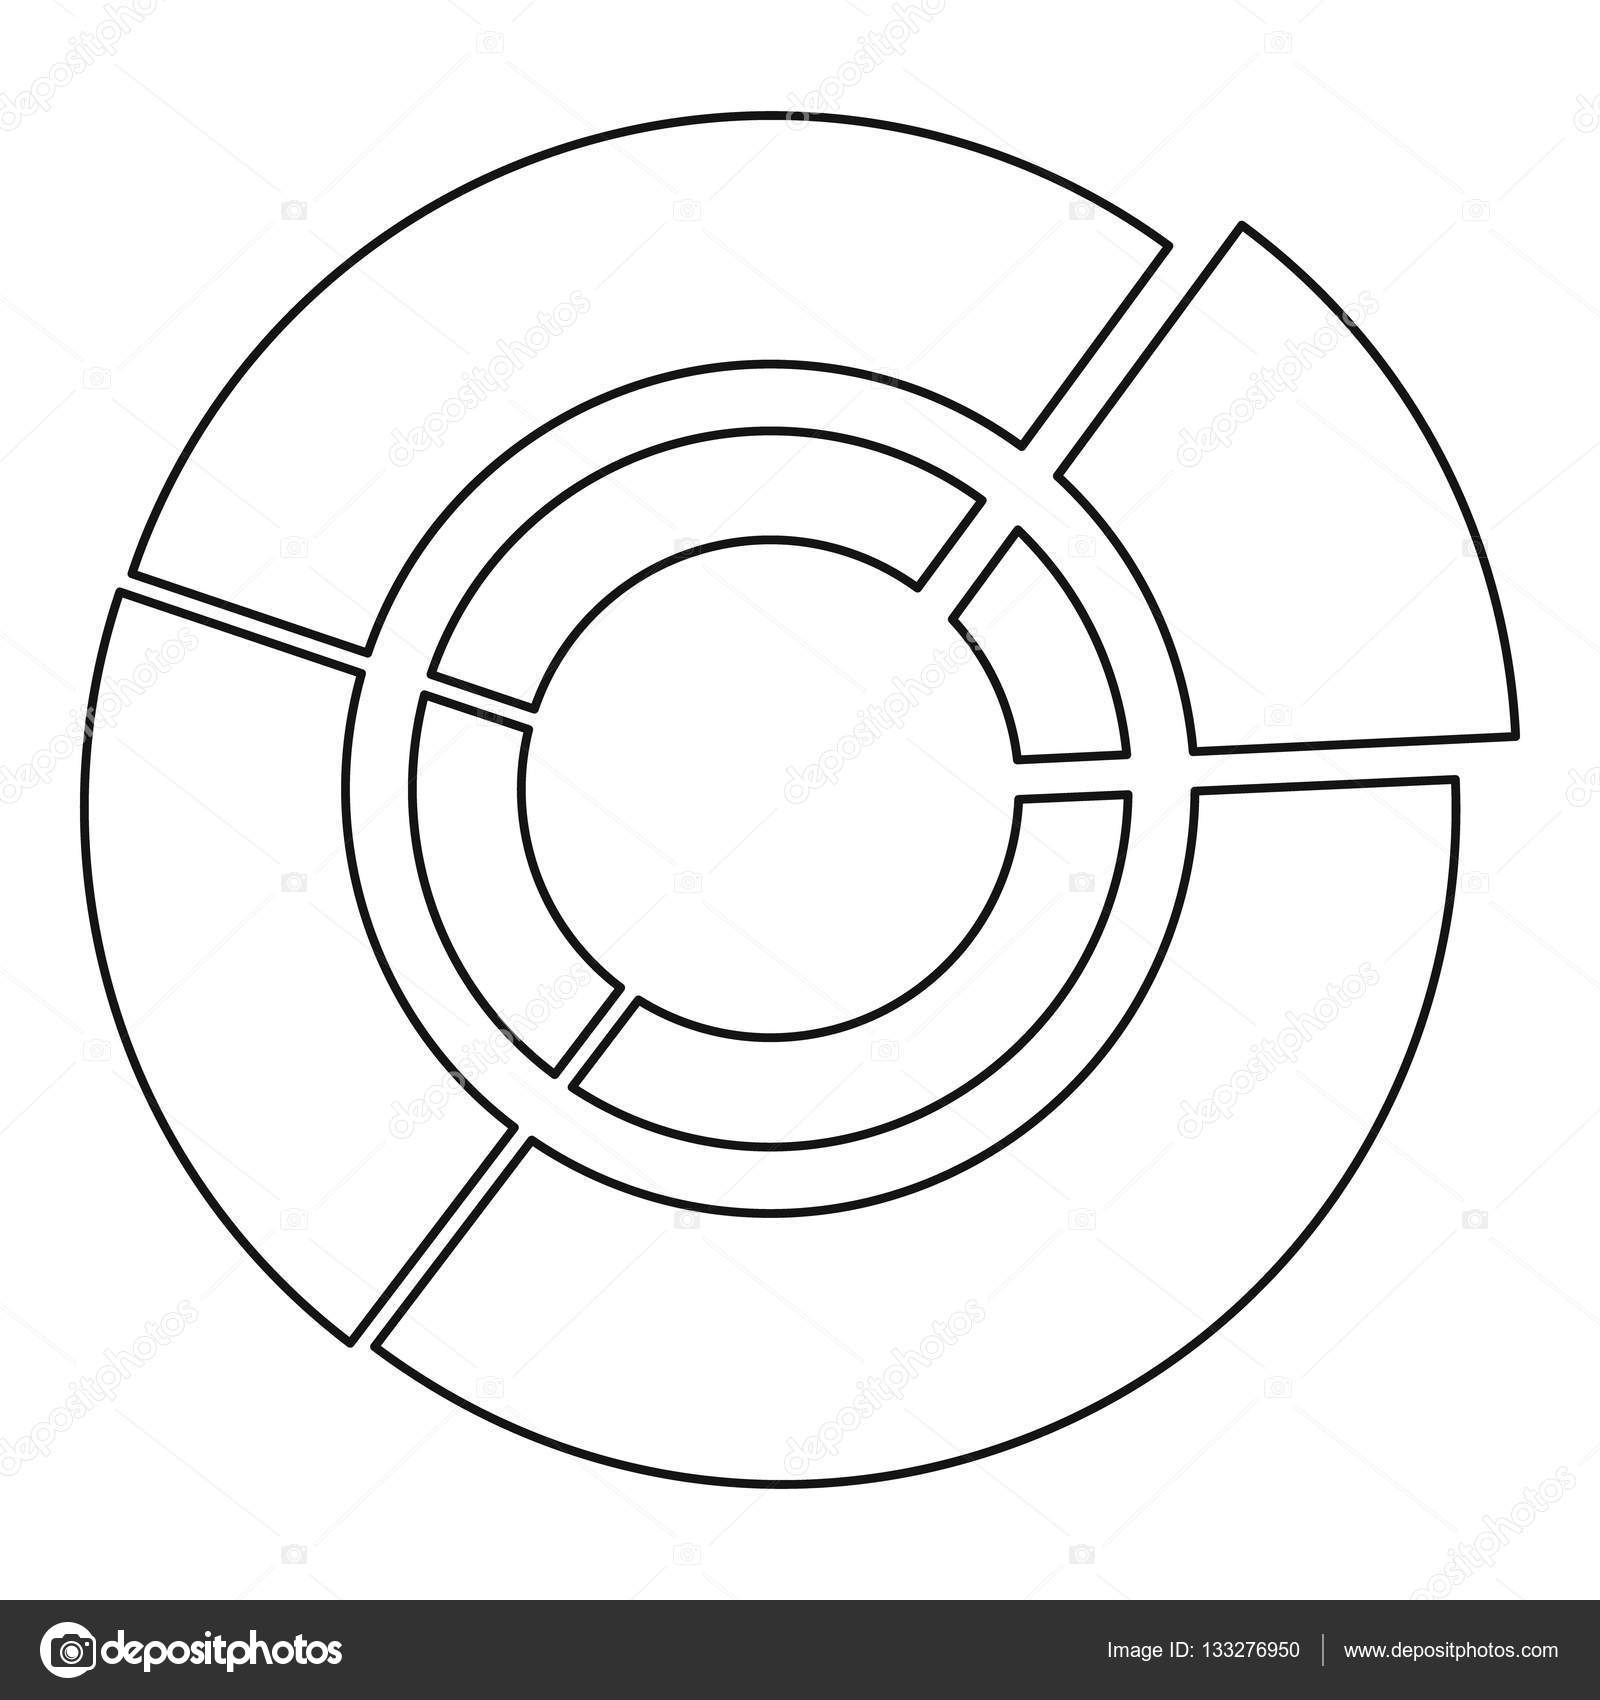 Pie Chart Drawing At Getdrawings